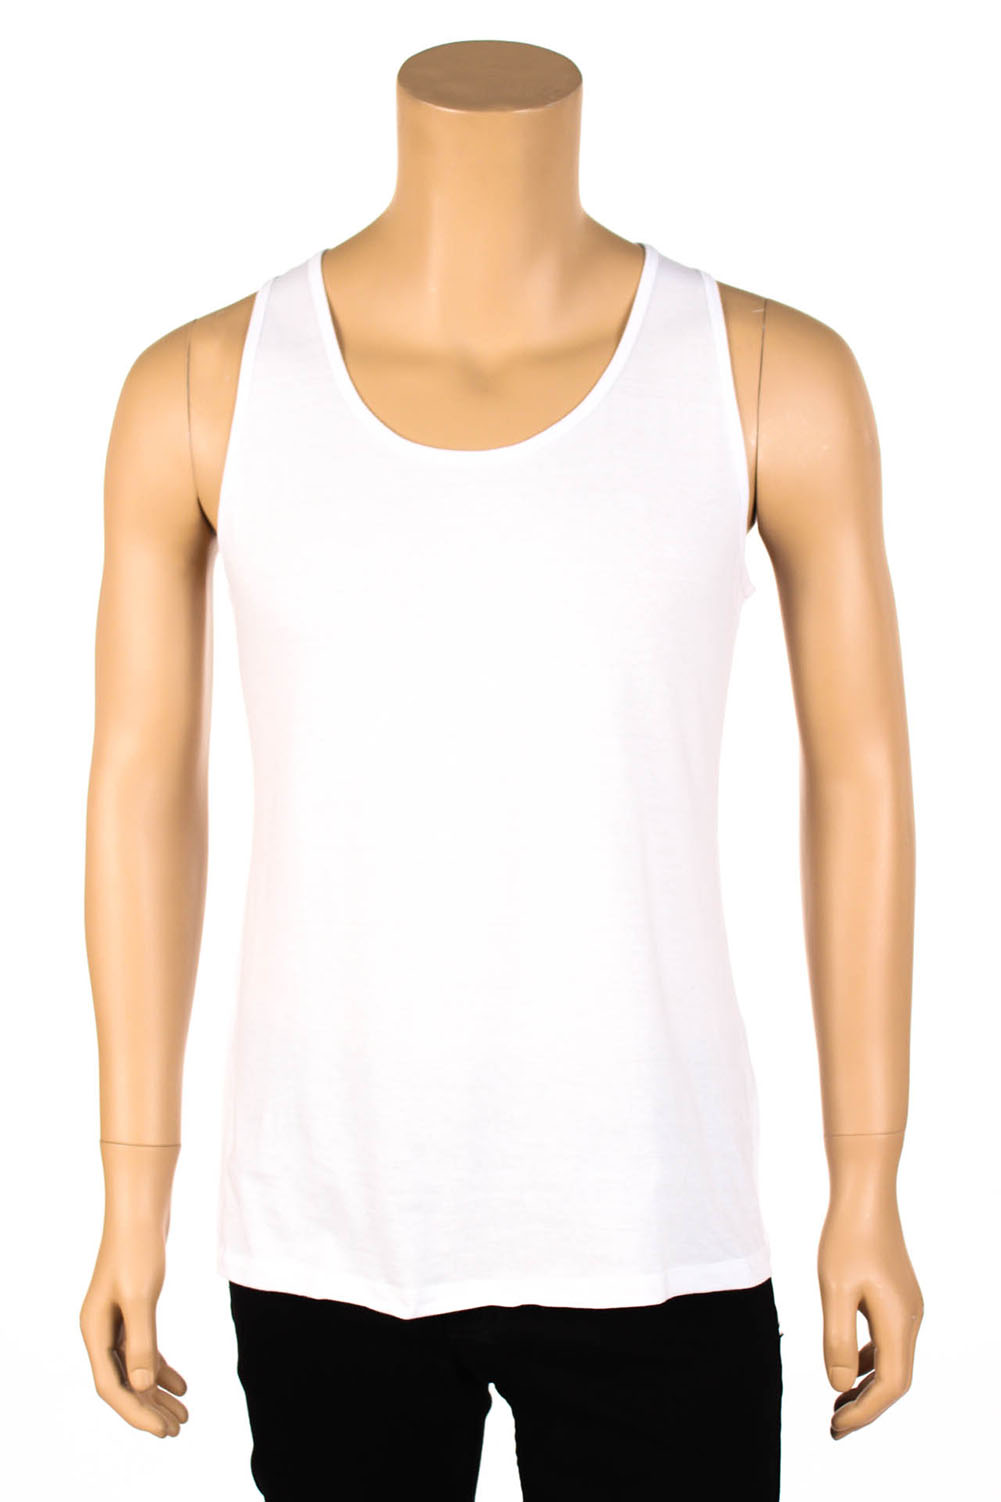 Men loose fit tank top sleeveless shirt singlet workout for Best work out shirts